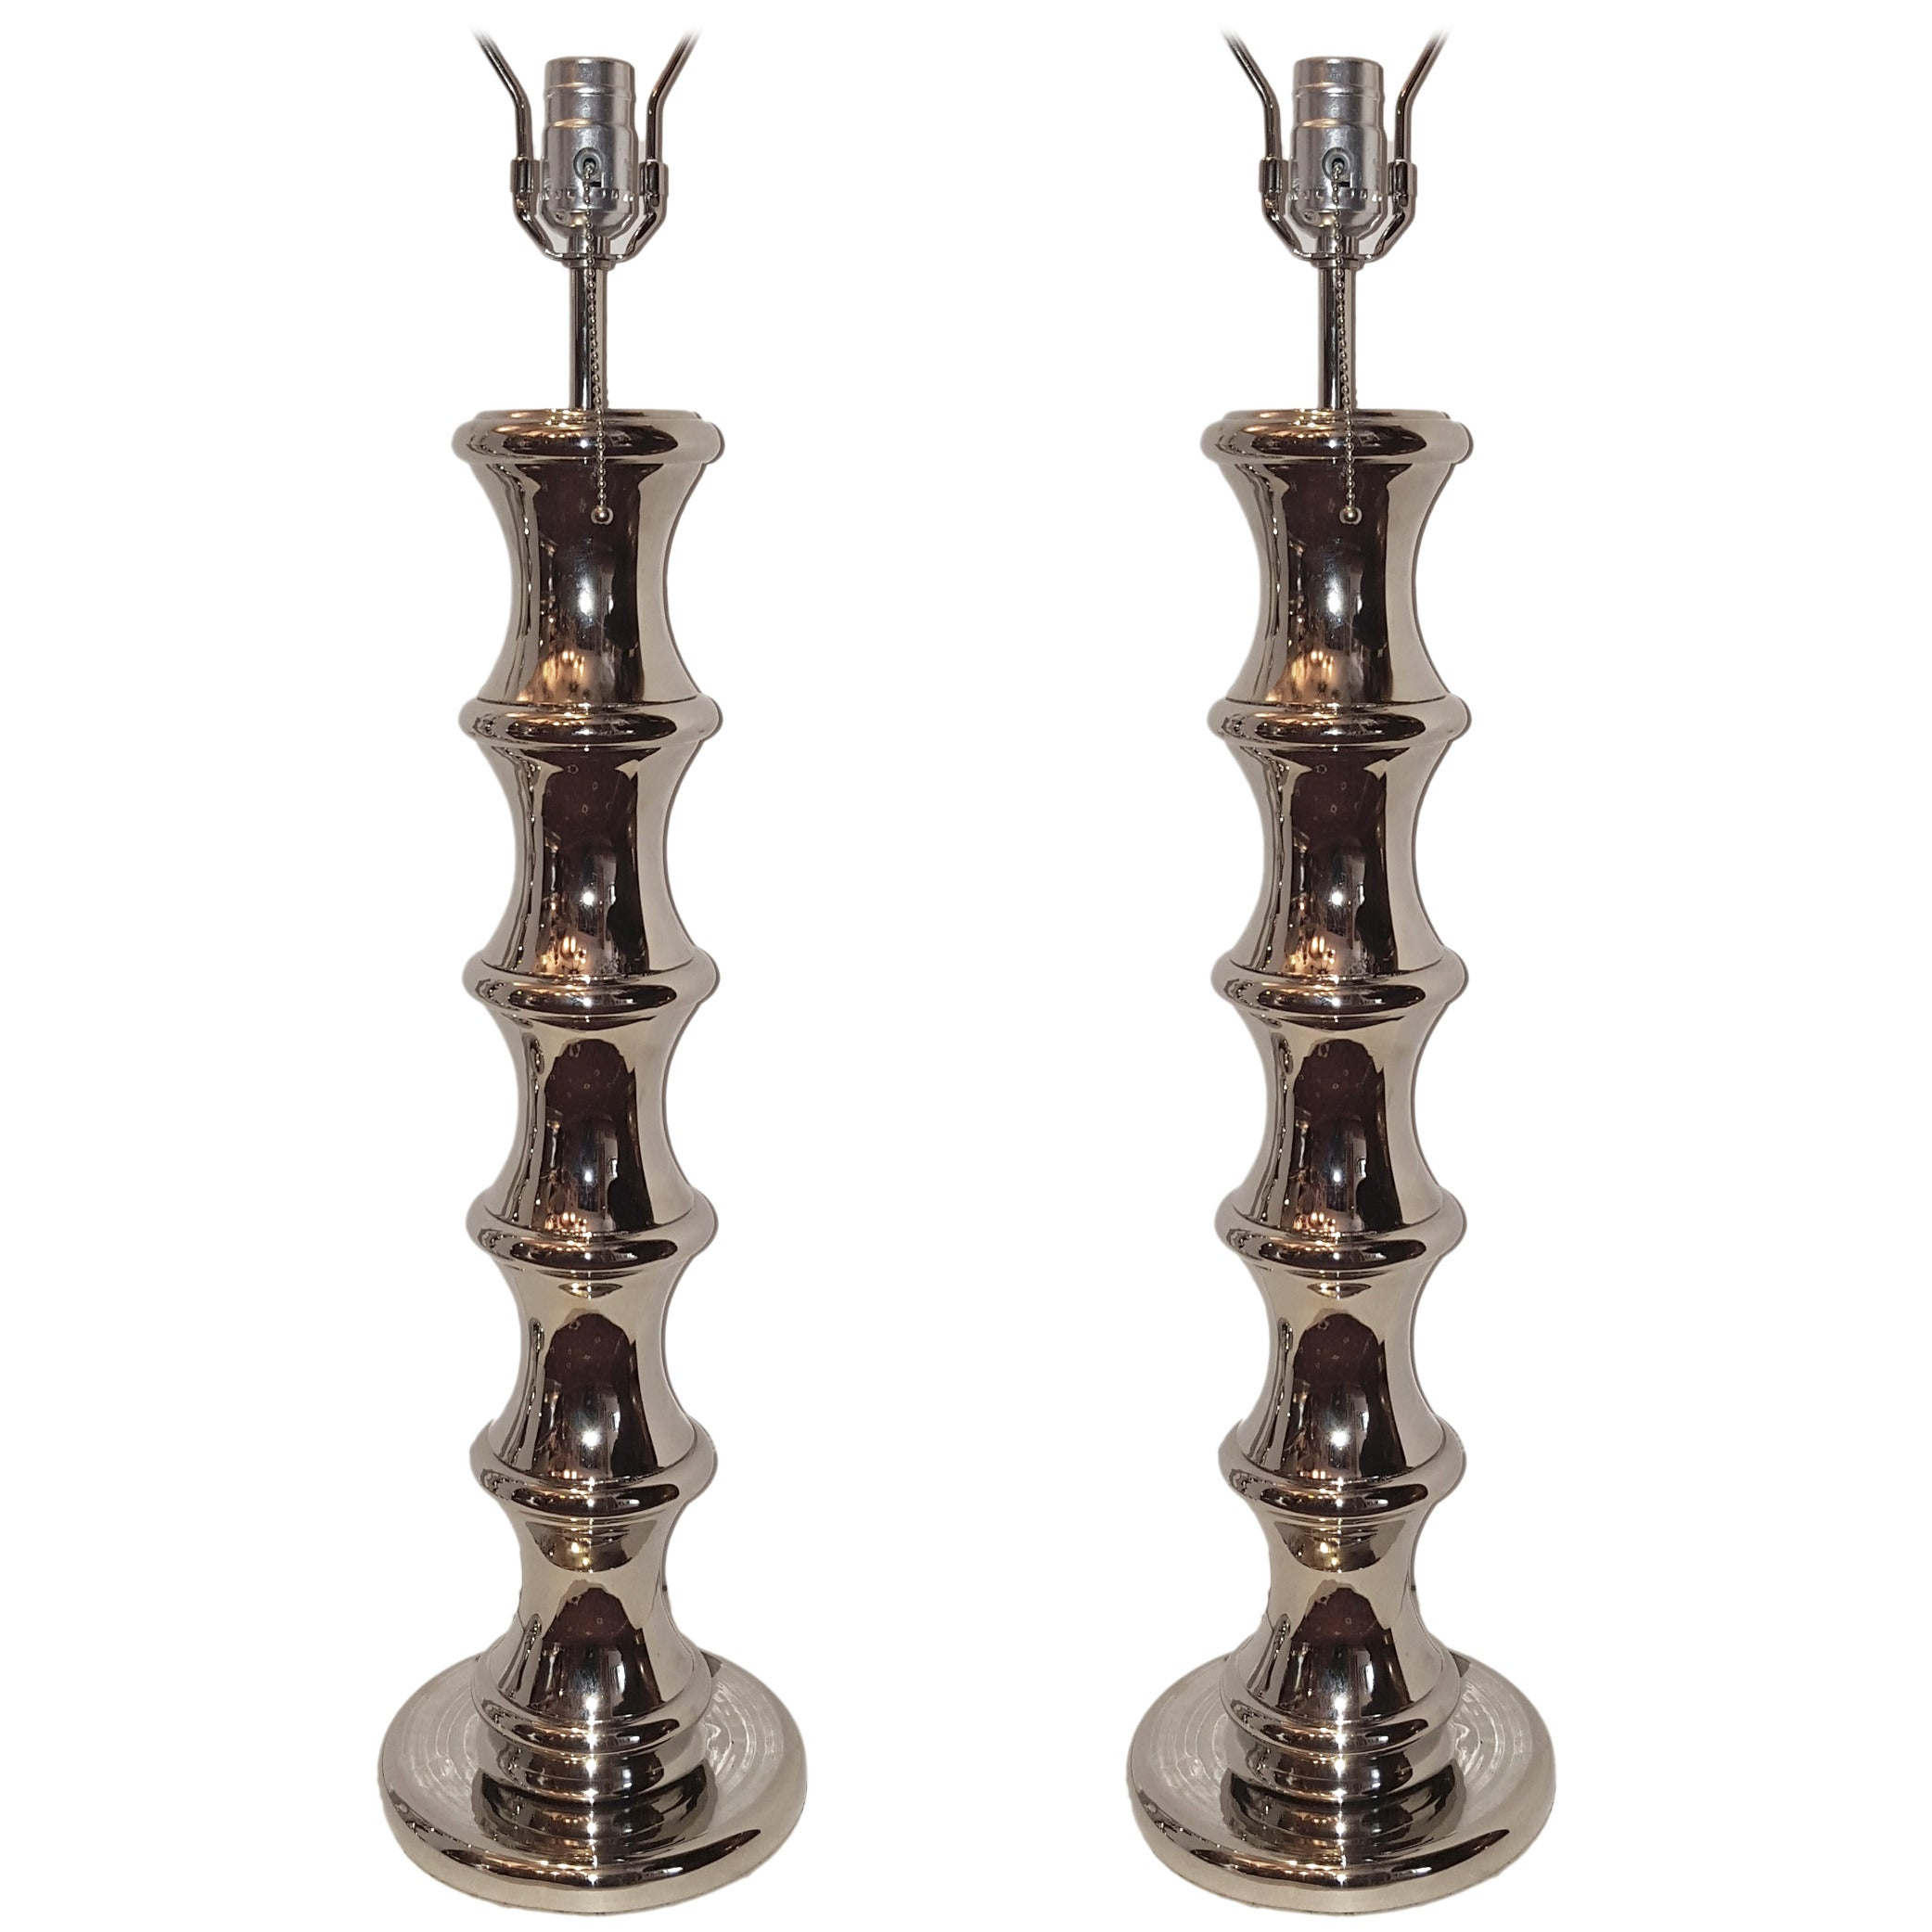 Pair of Nickel Plated Table Lamps